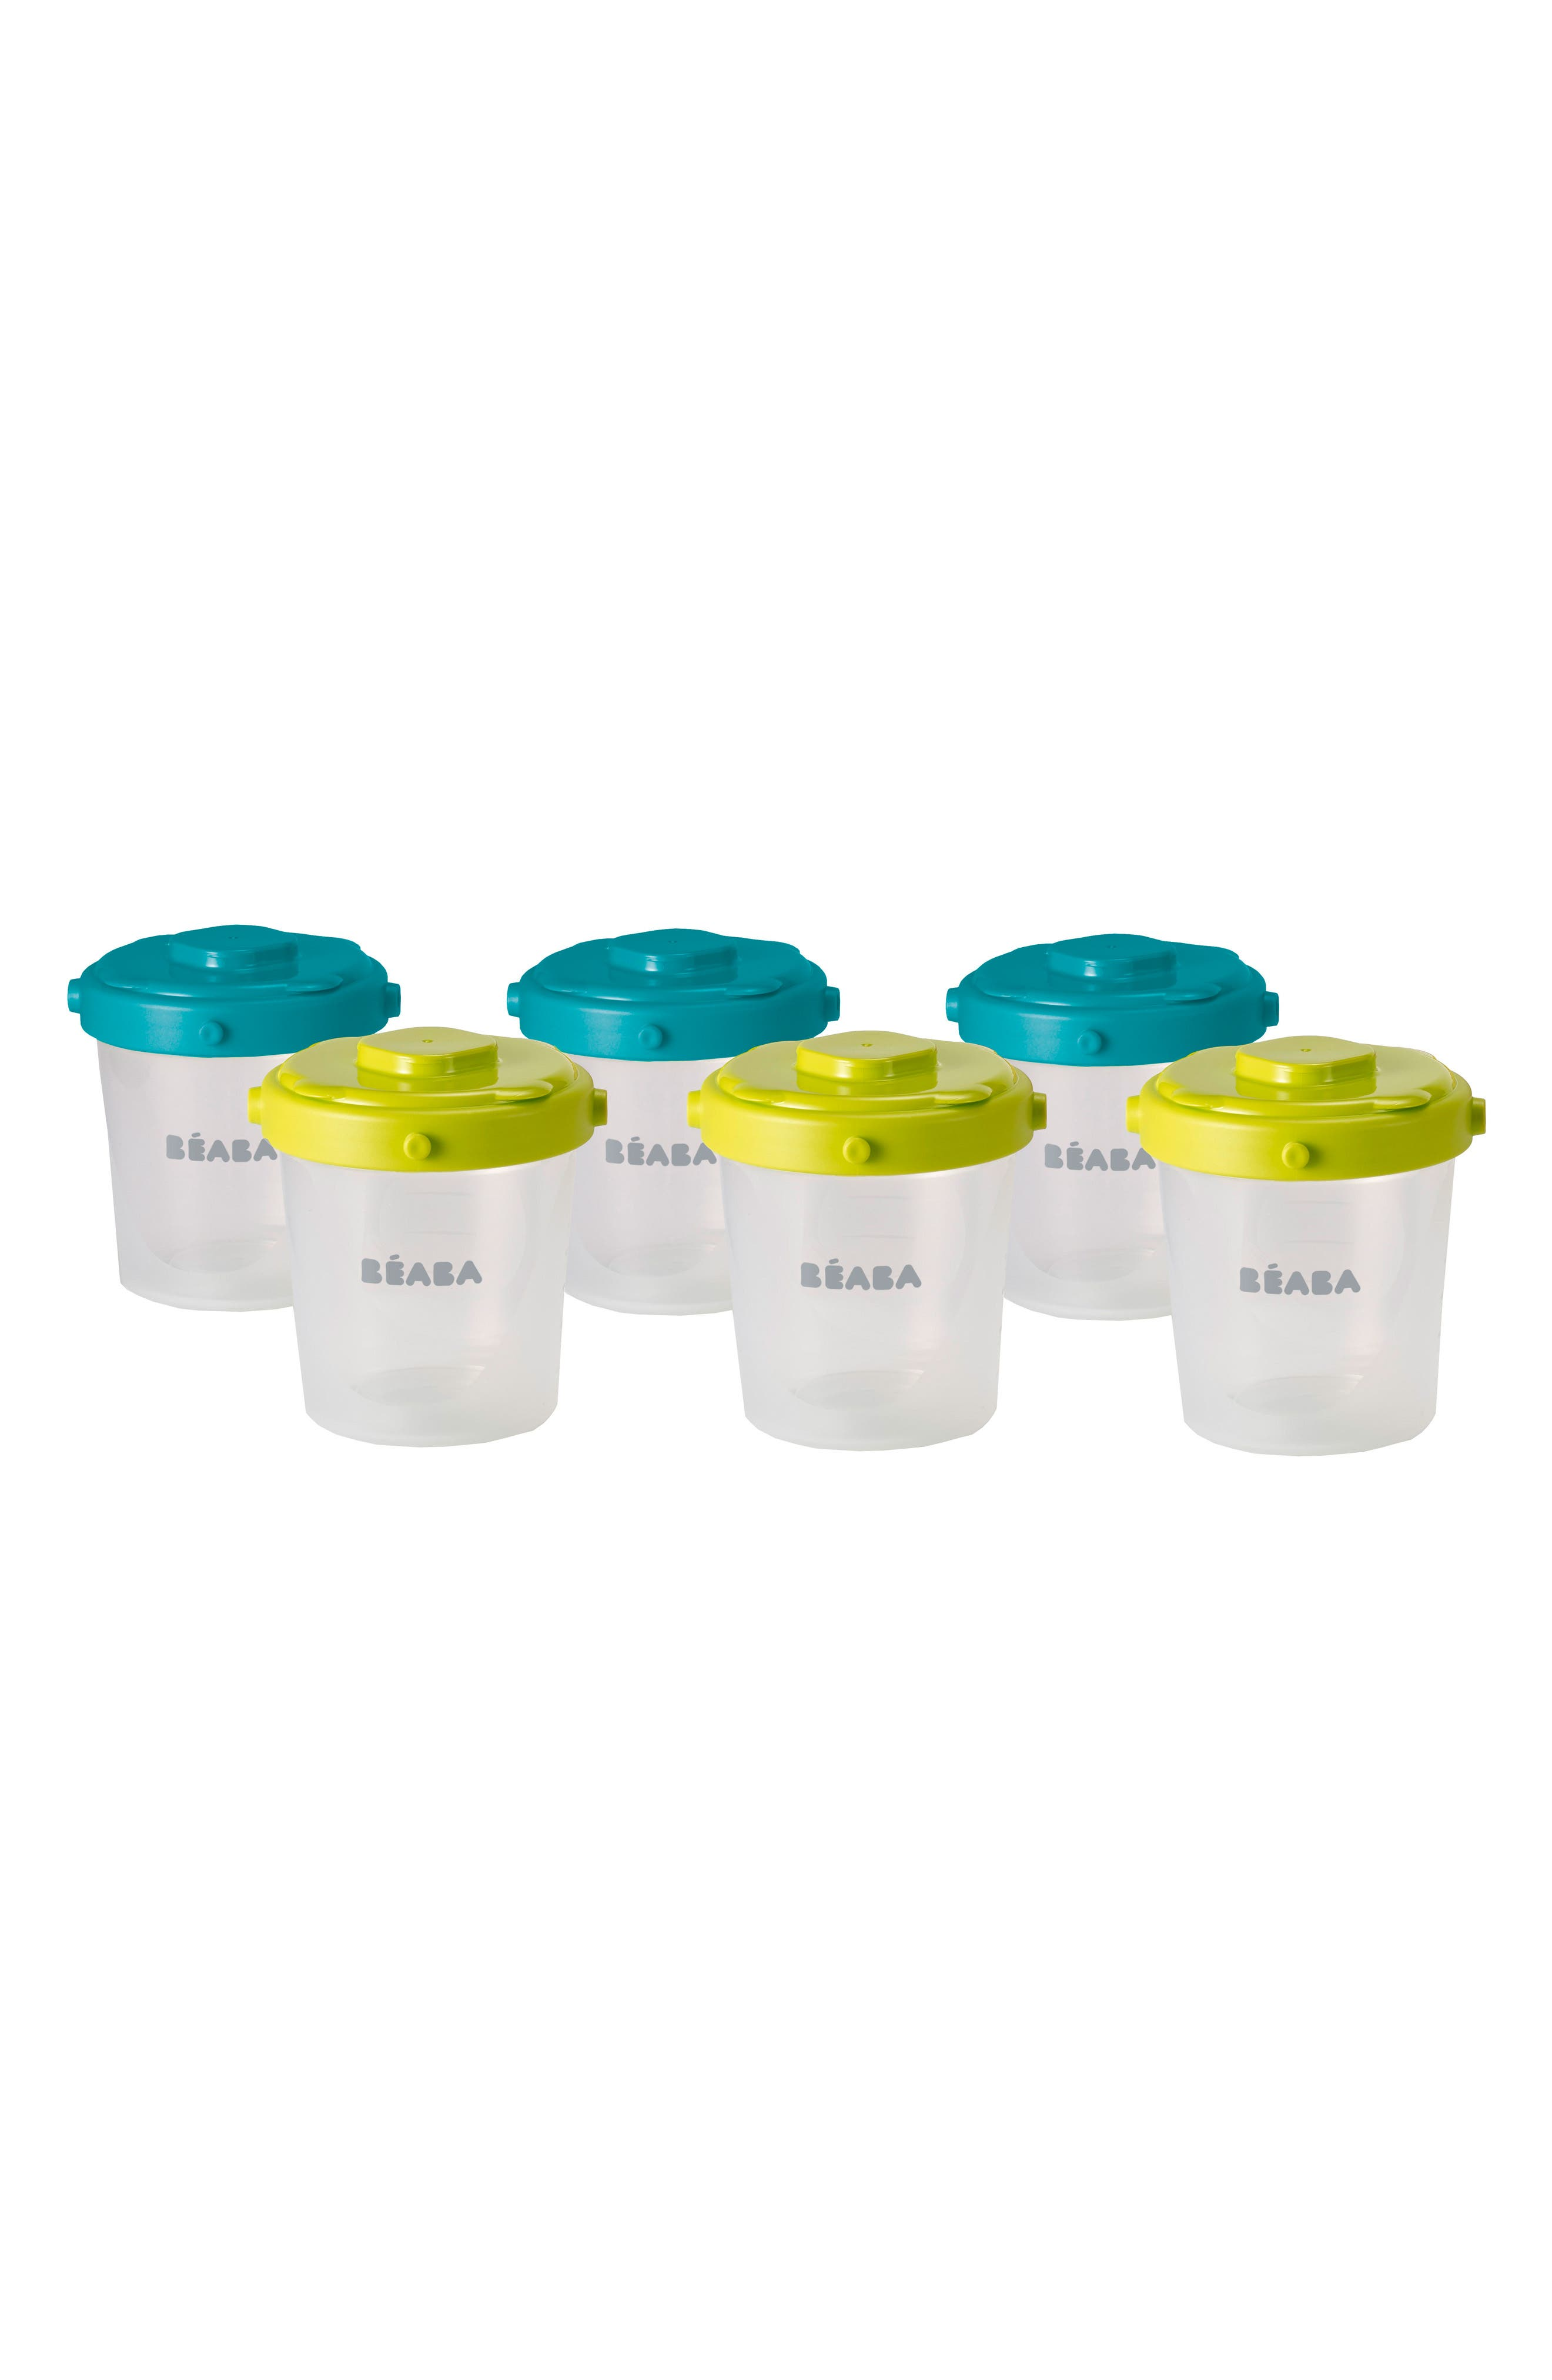 6-Pack Clip Portion Containers,                         Main,                         color, Peacock